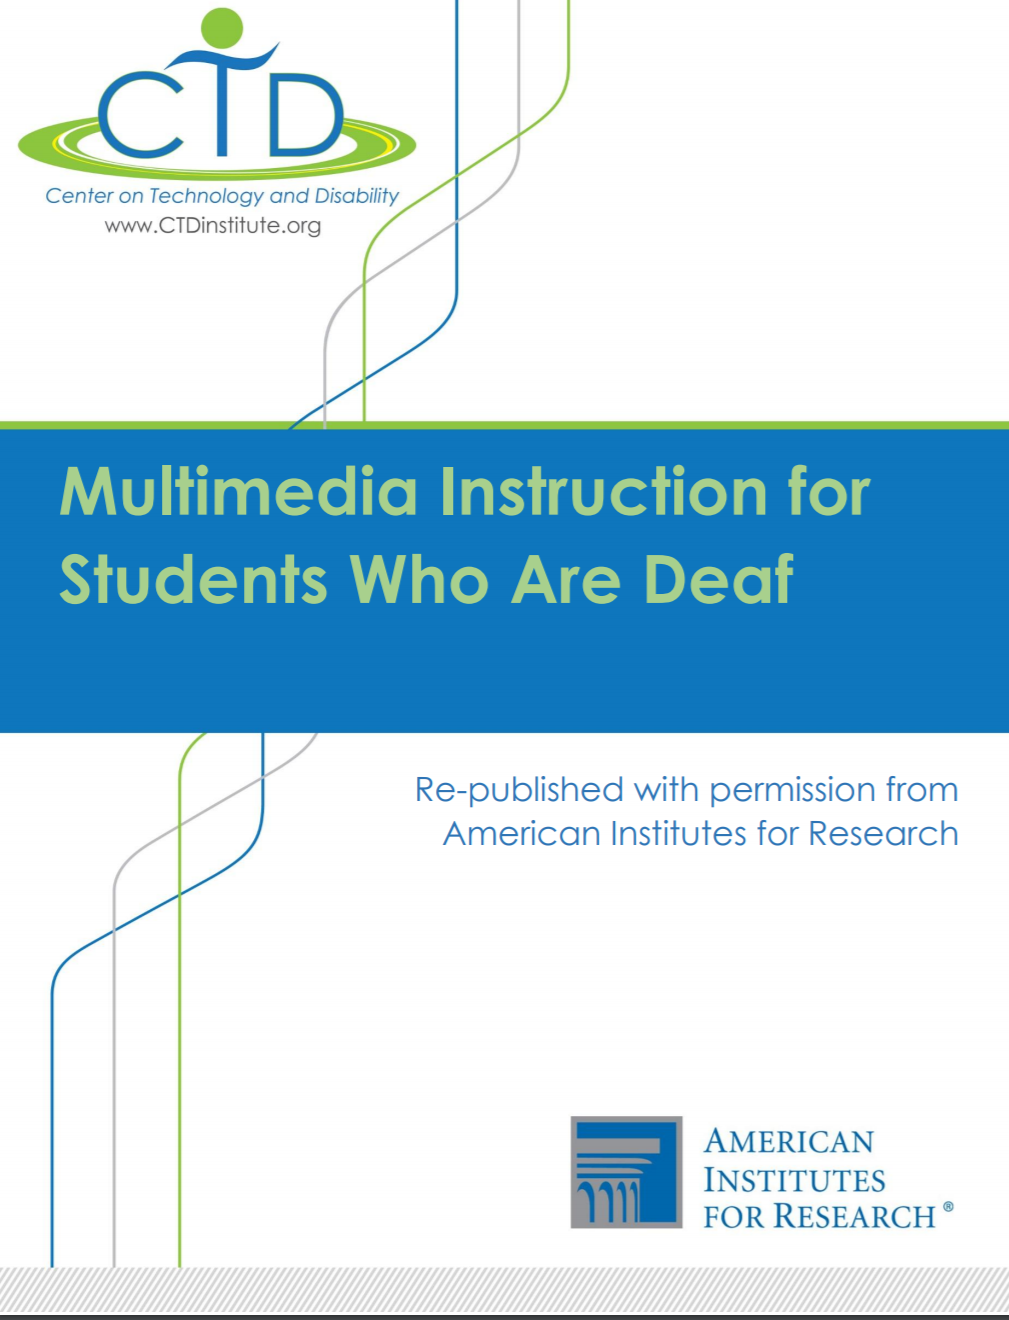 """Image shows the cover for the document entitled """"Multimedia Instruction for Students Who Are Deaf"""". Above the title is the logo for the Center on Technology and Disability. Below the main title is the statement, """"Re-published with permission from American Institutes for Research"""". The logo for American Institutes for Research is at the bottom of the page."""